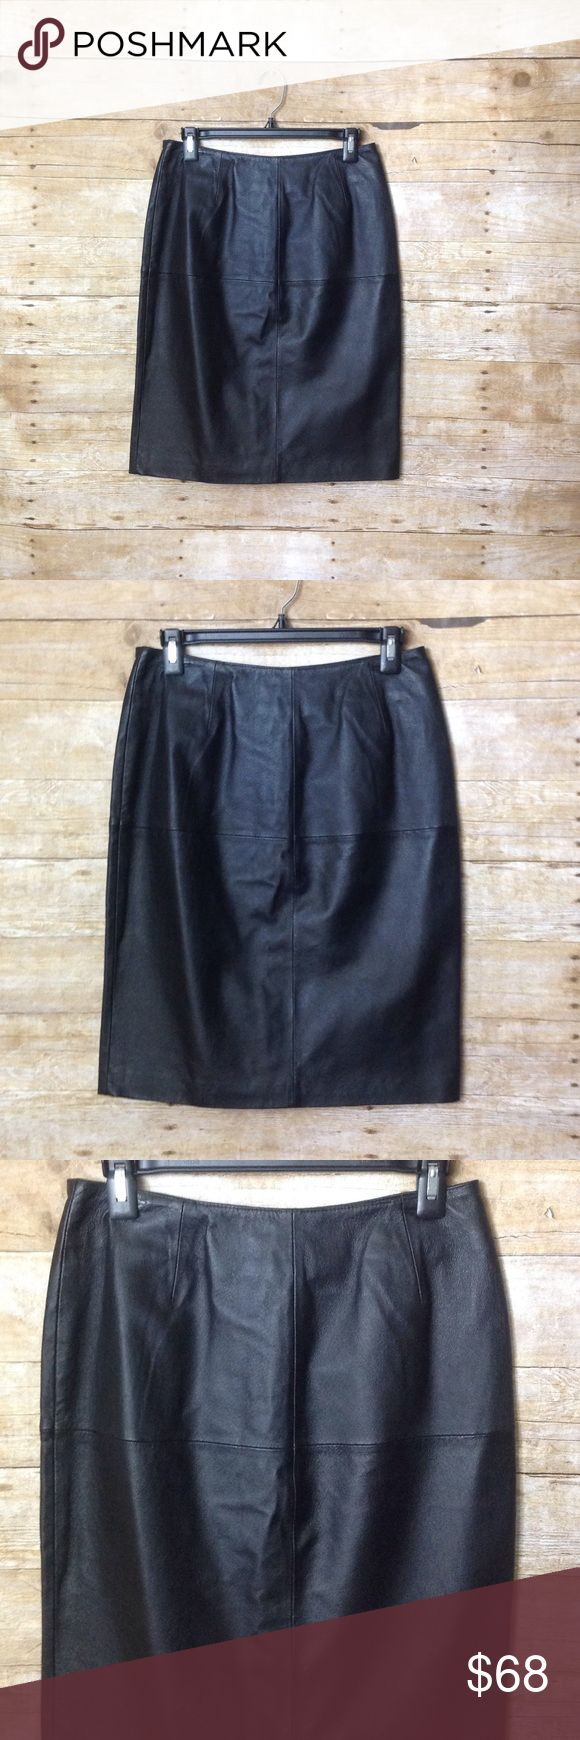 Newport News Sexy Black Leather Pencil Skirt Sz 8 Newport News Brand- Size 8 Black Leather Skirt- High Quality- New With Tags- Fast Shipping Newport News Skirts Pencil